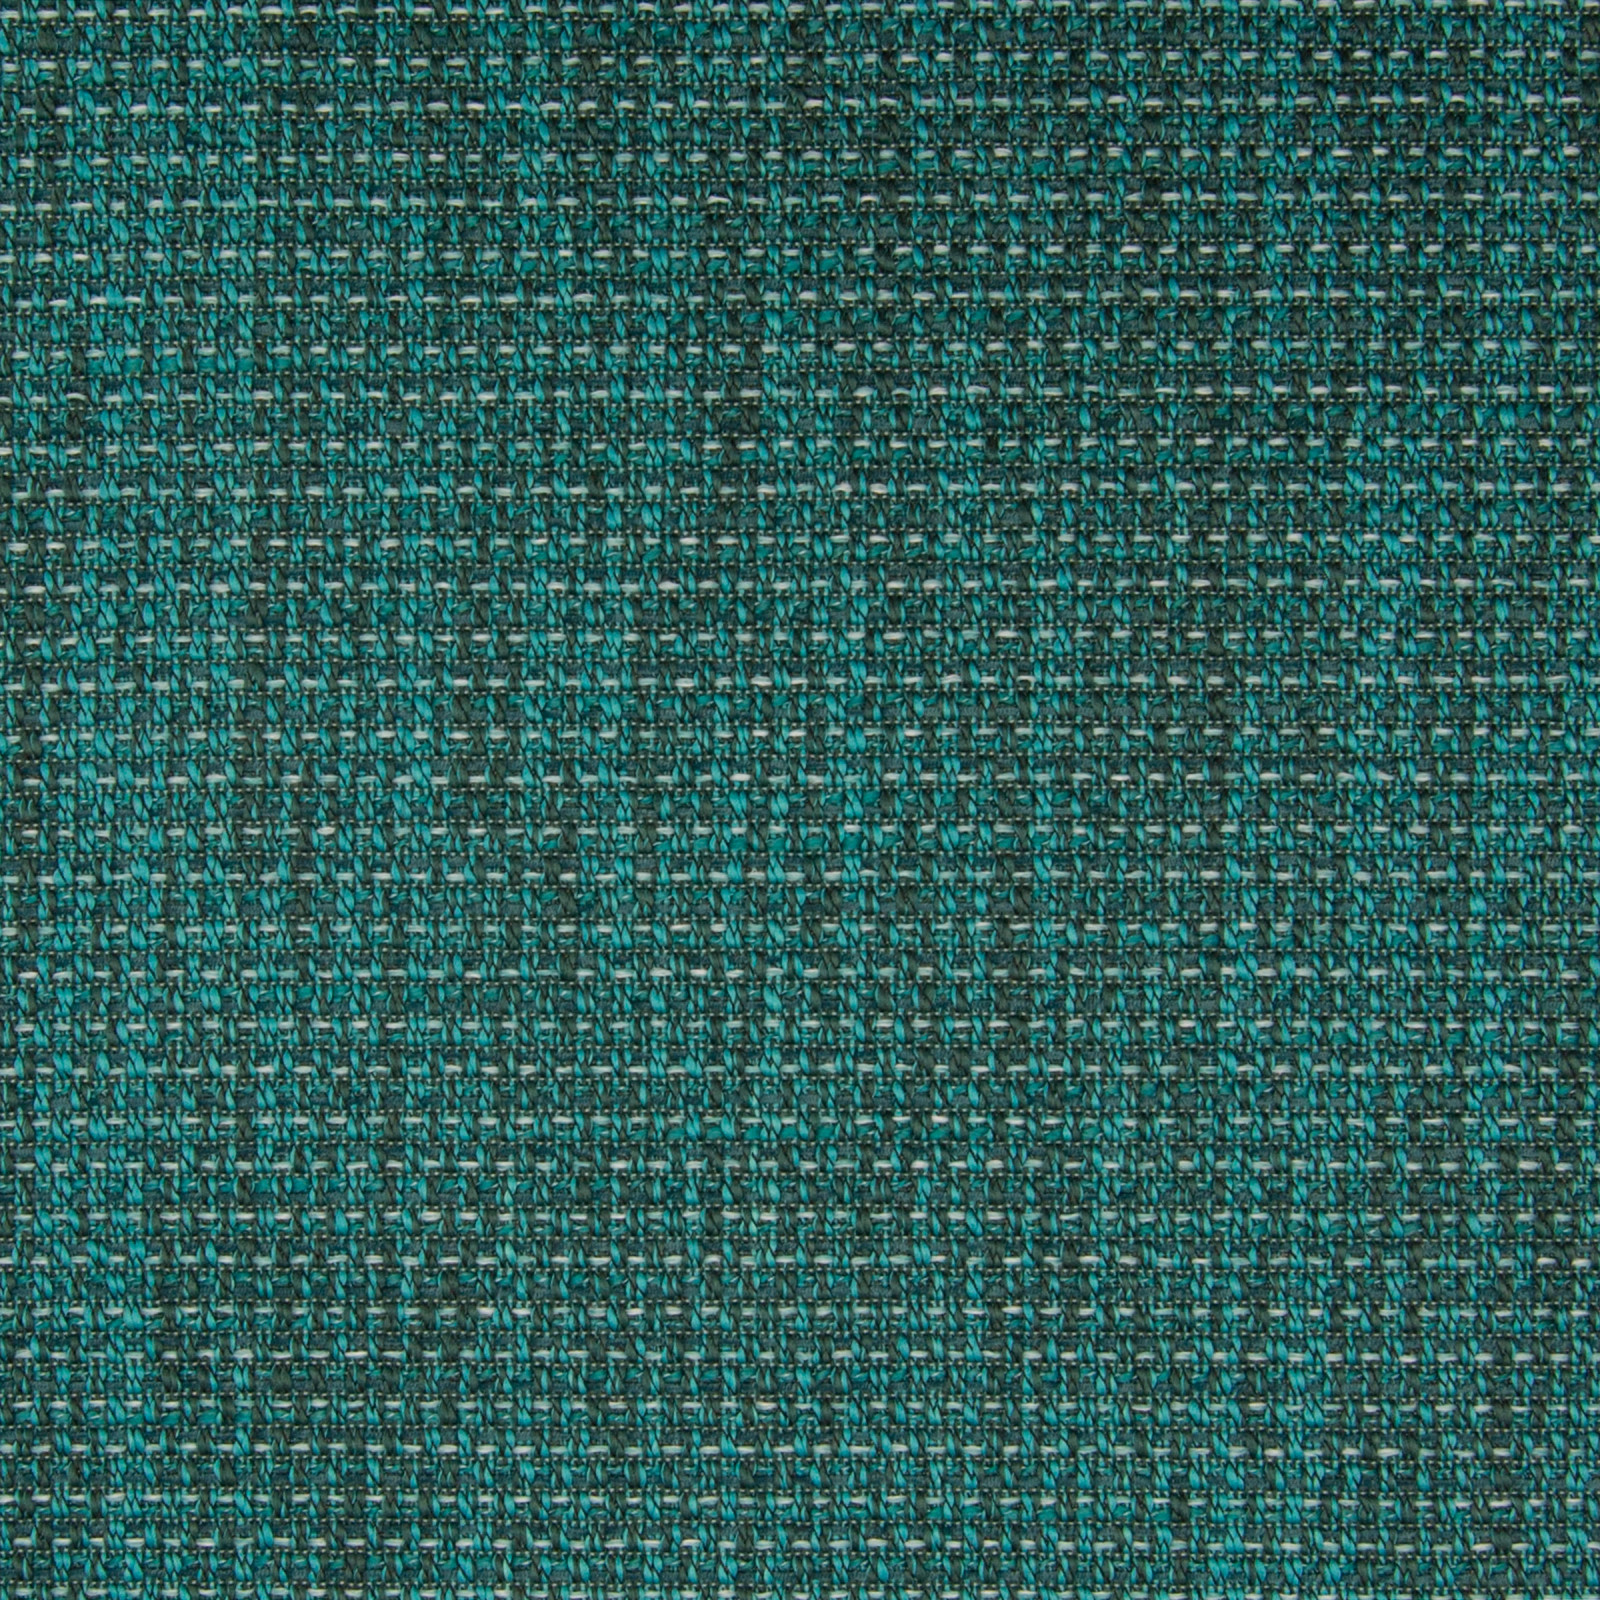 Turquoise Teal And Blue Solid Woven Upholstery Fabric